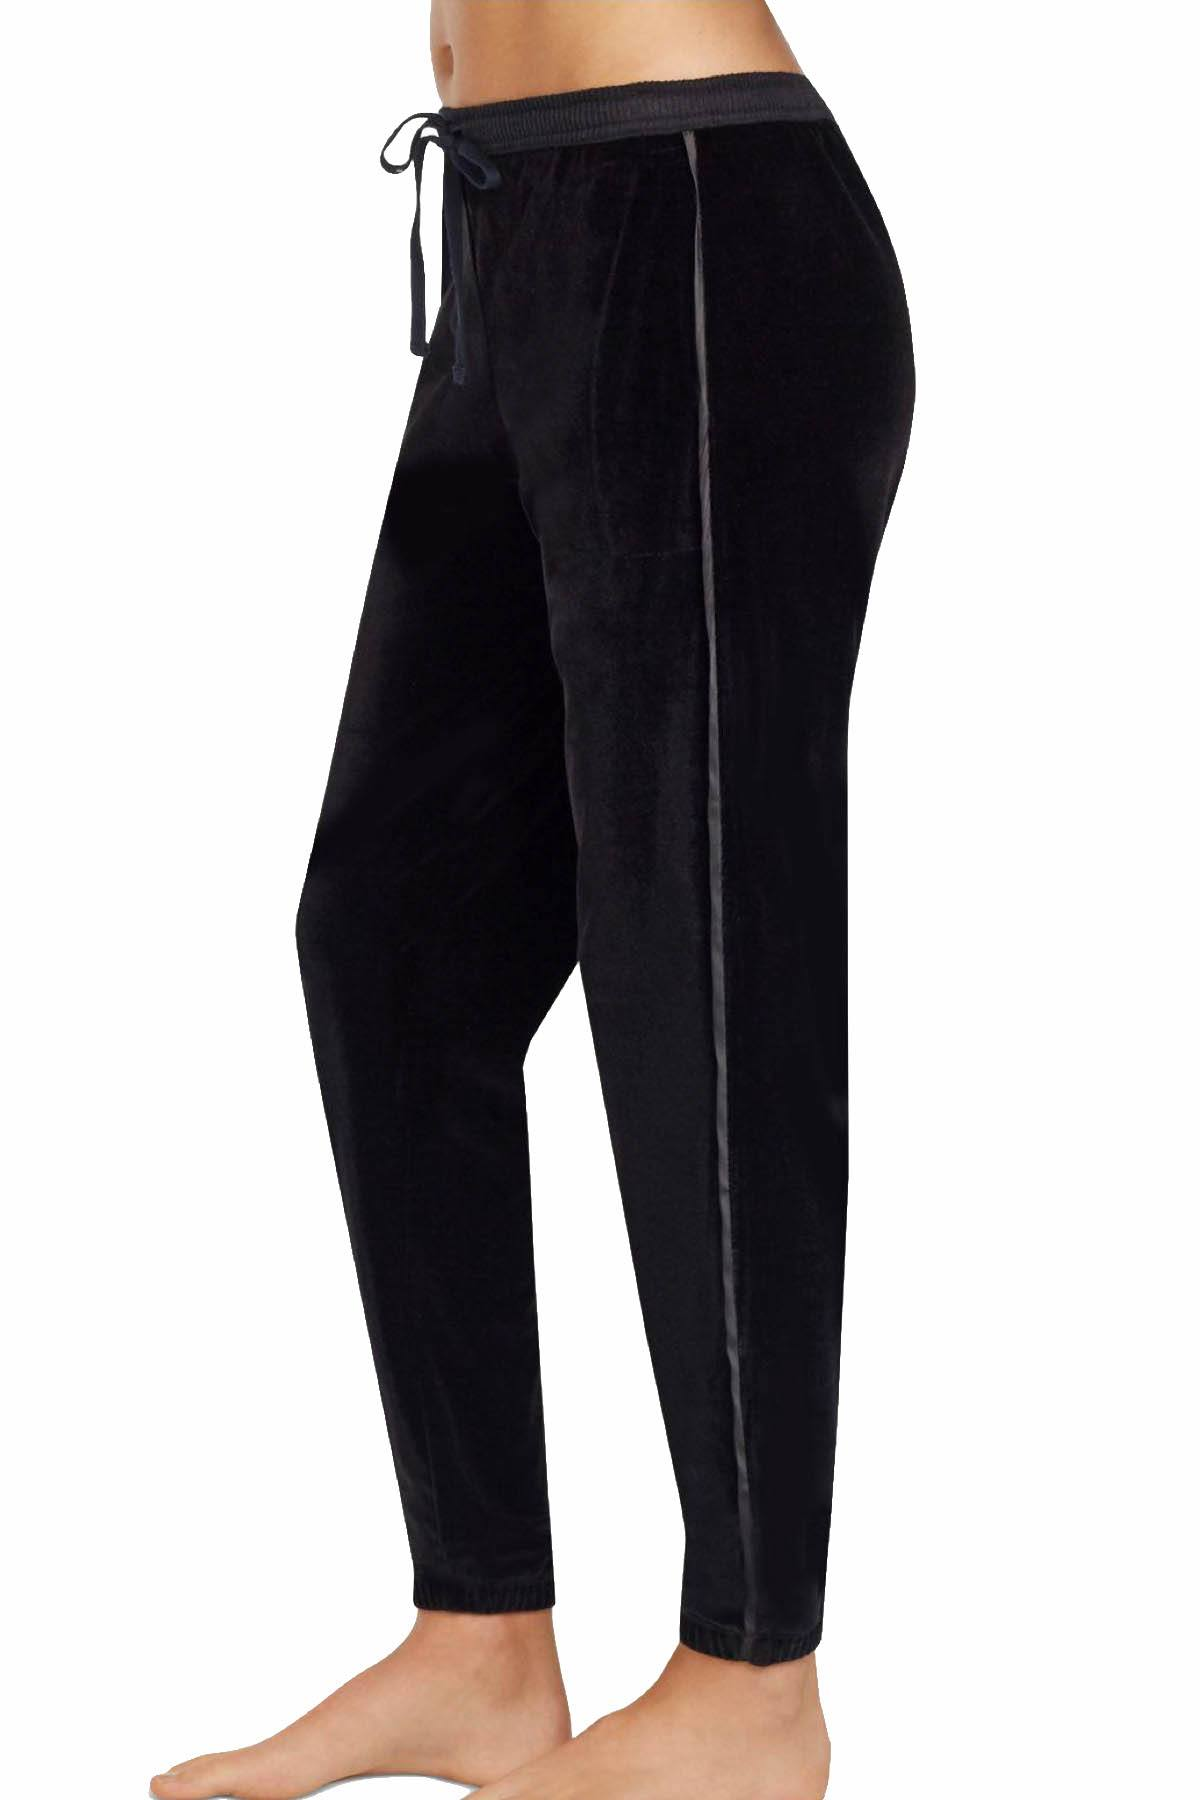 DKNY Black Stretch-Velour Pajama Pant